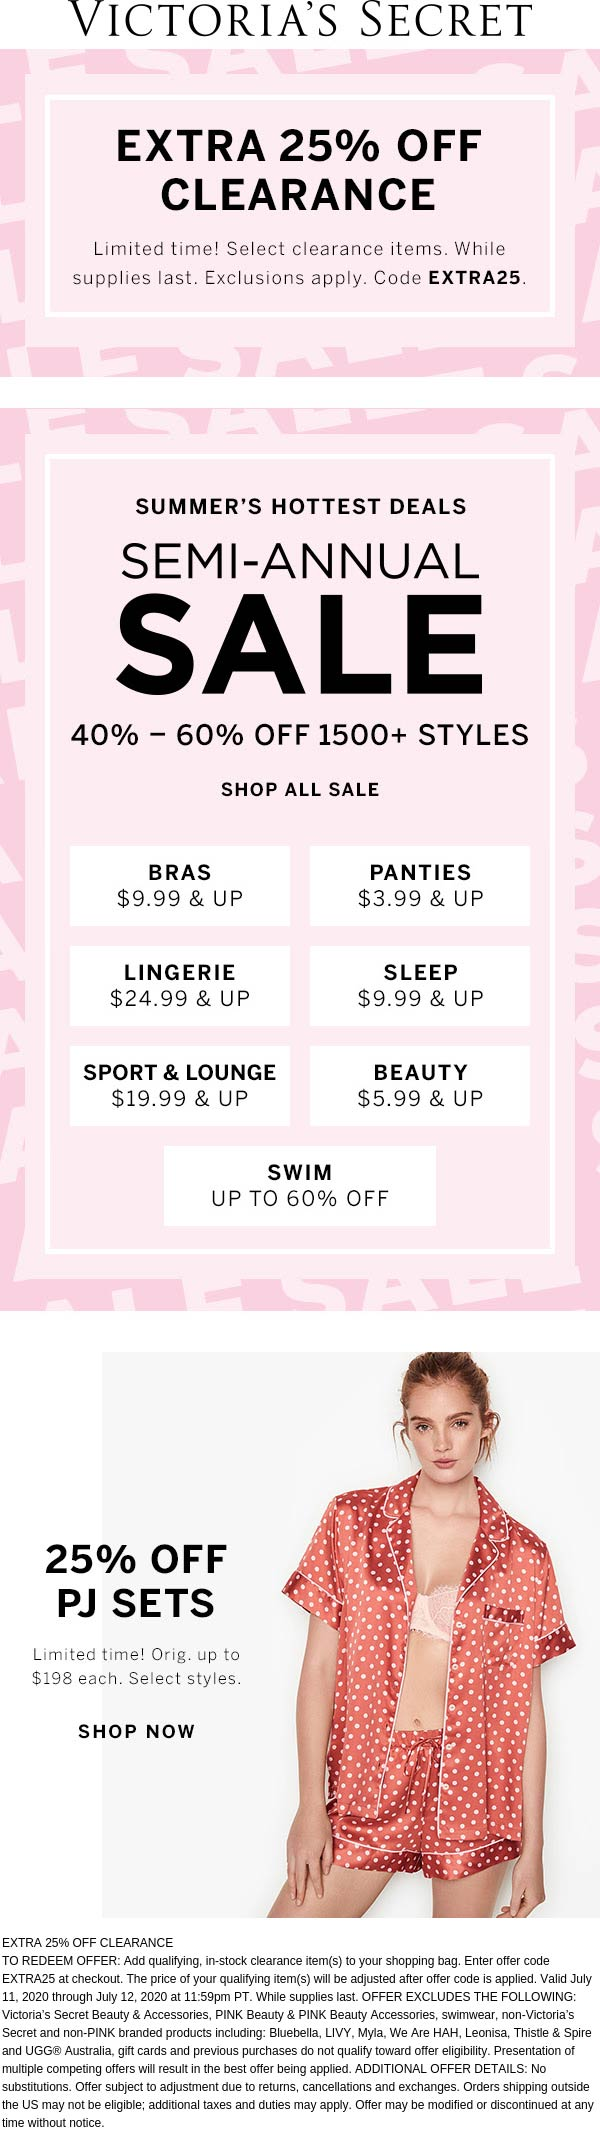 Extra 25% off clearance at Victorias Secret via promo code EXTRA25 #victoriassecret